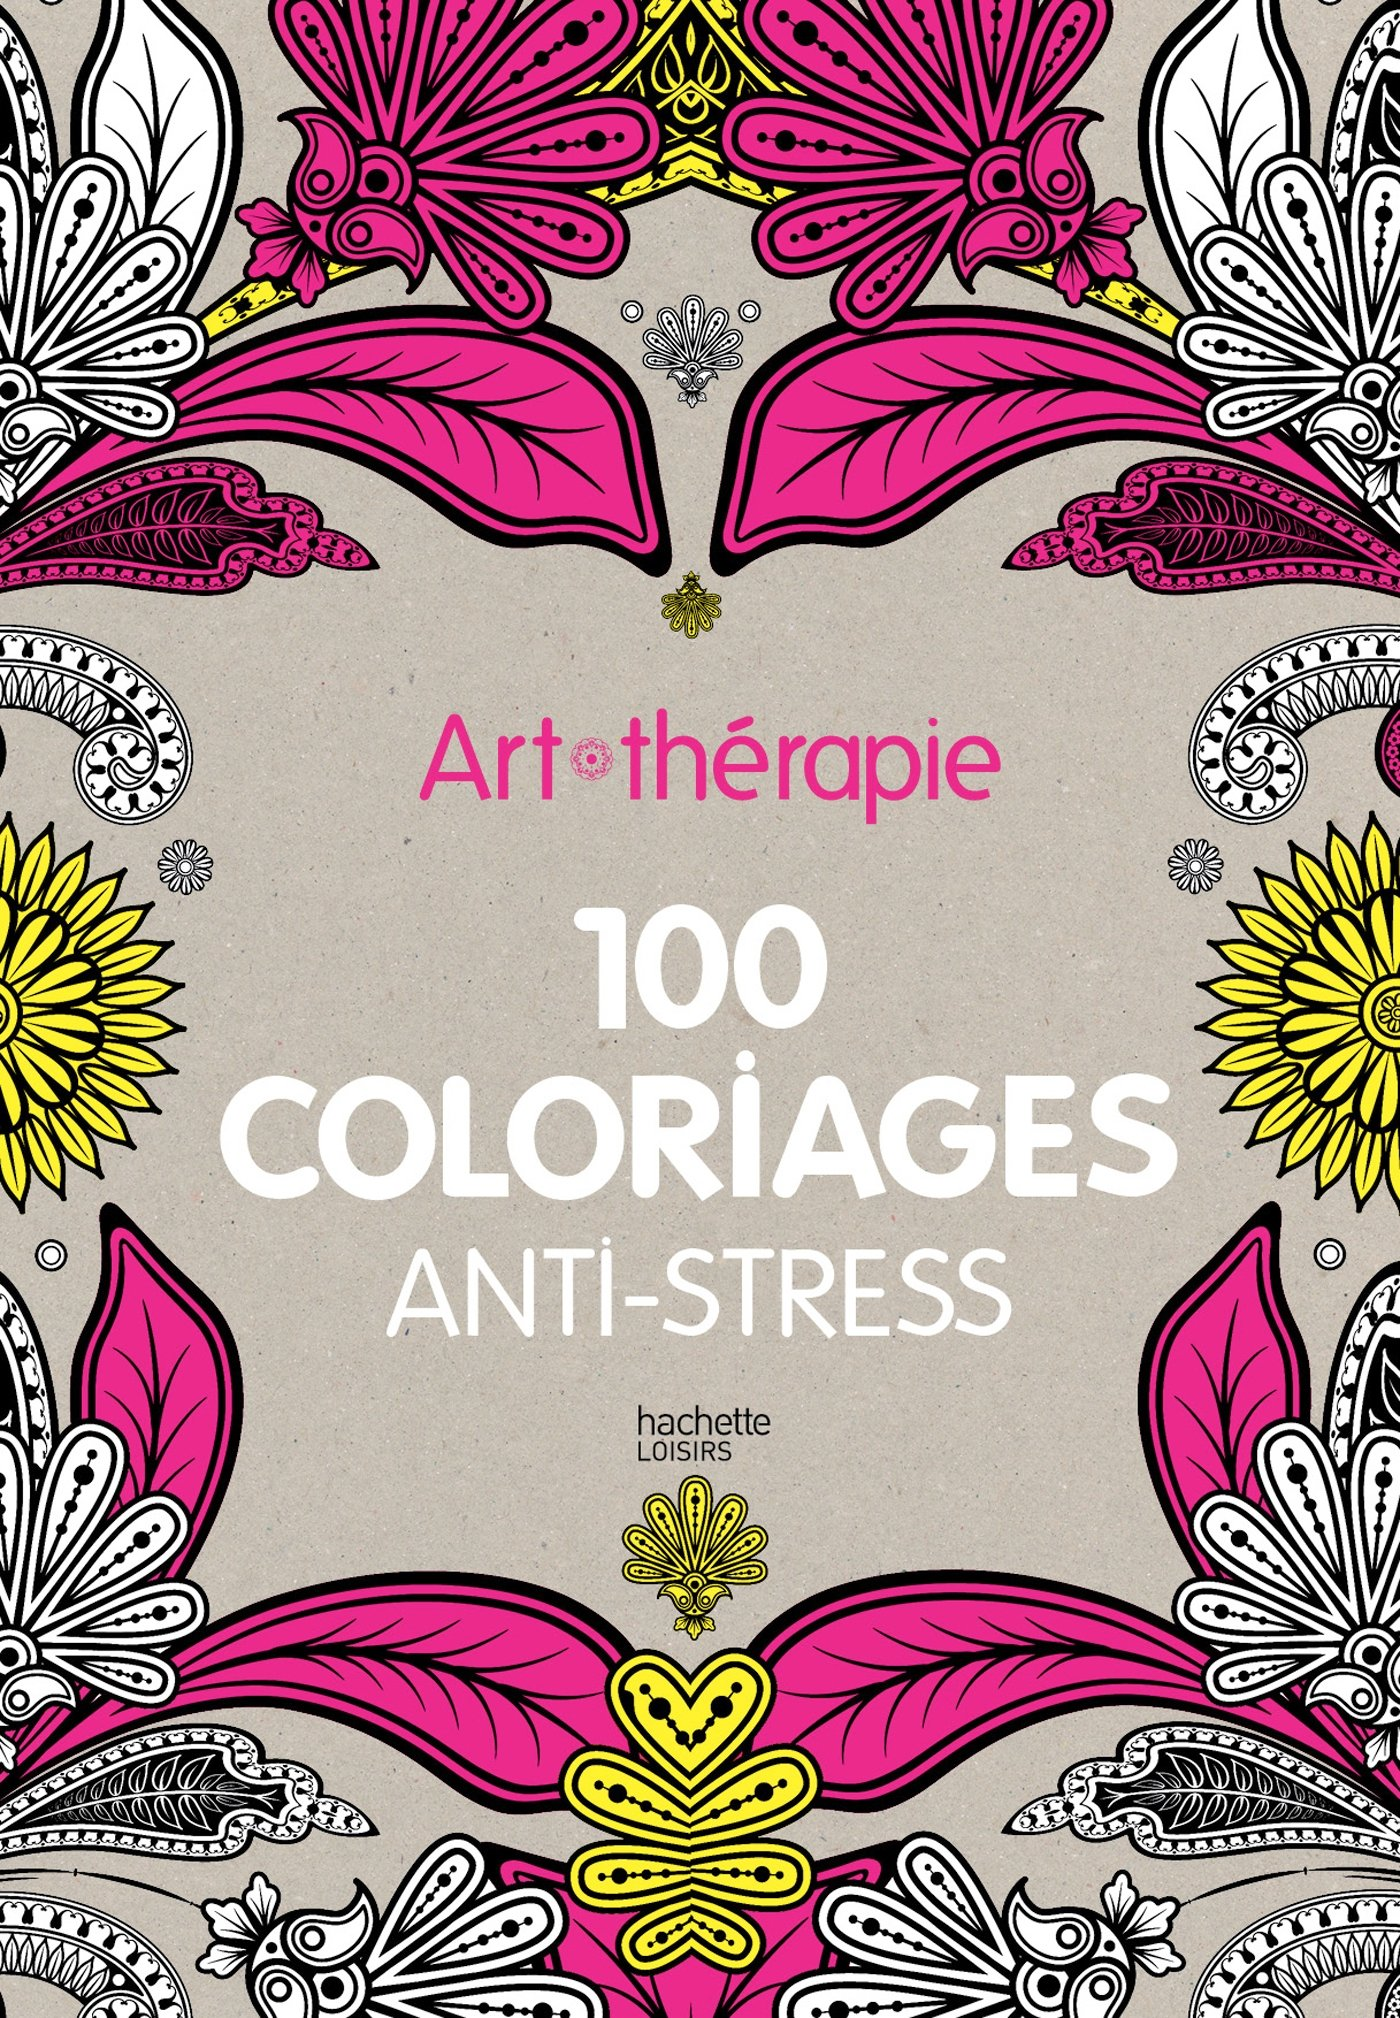 Coloriage Anti Stress Cest Quoi.Art Therapie 100 Coloriages Anti Stress Amazon Fr